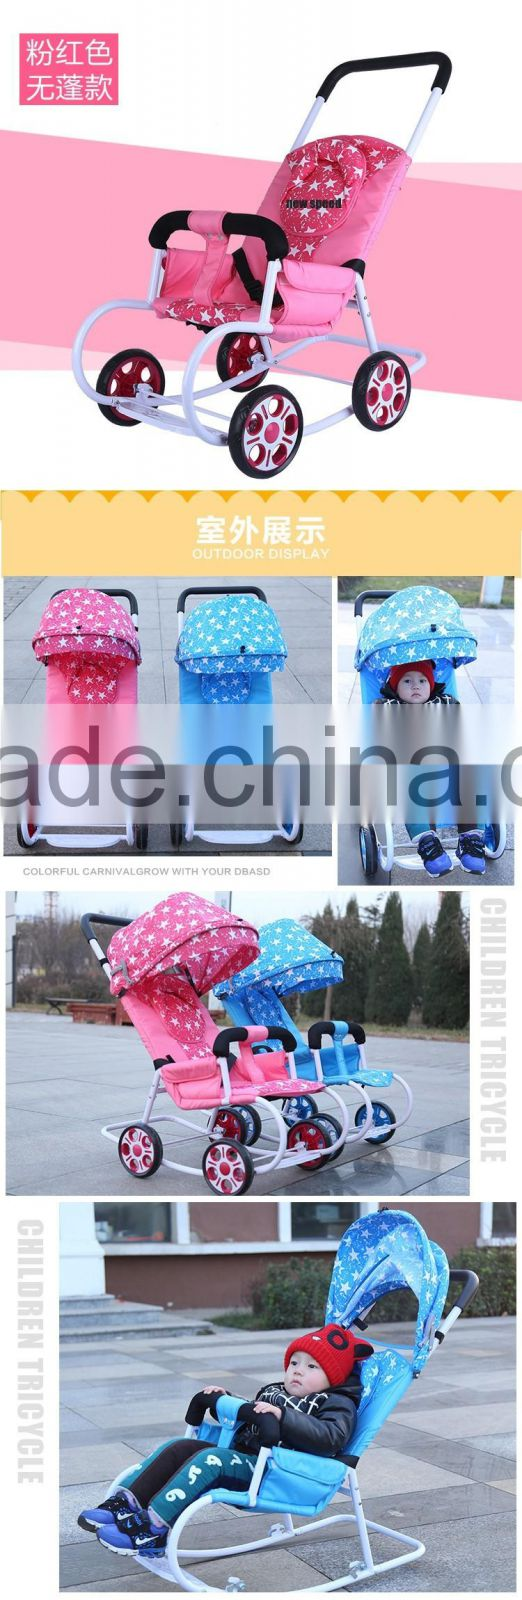 Good quality 2 in 1 baby stroller from china light weight baby stroller with rocking founction